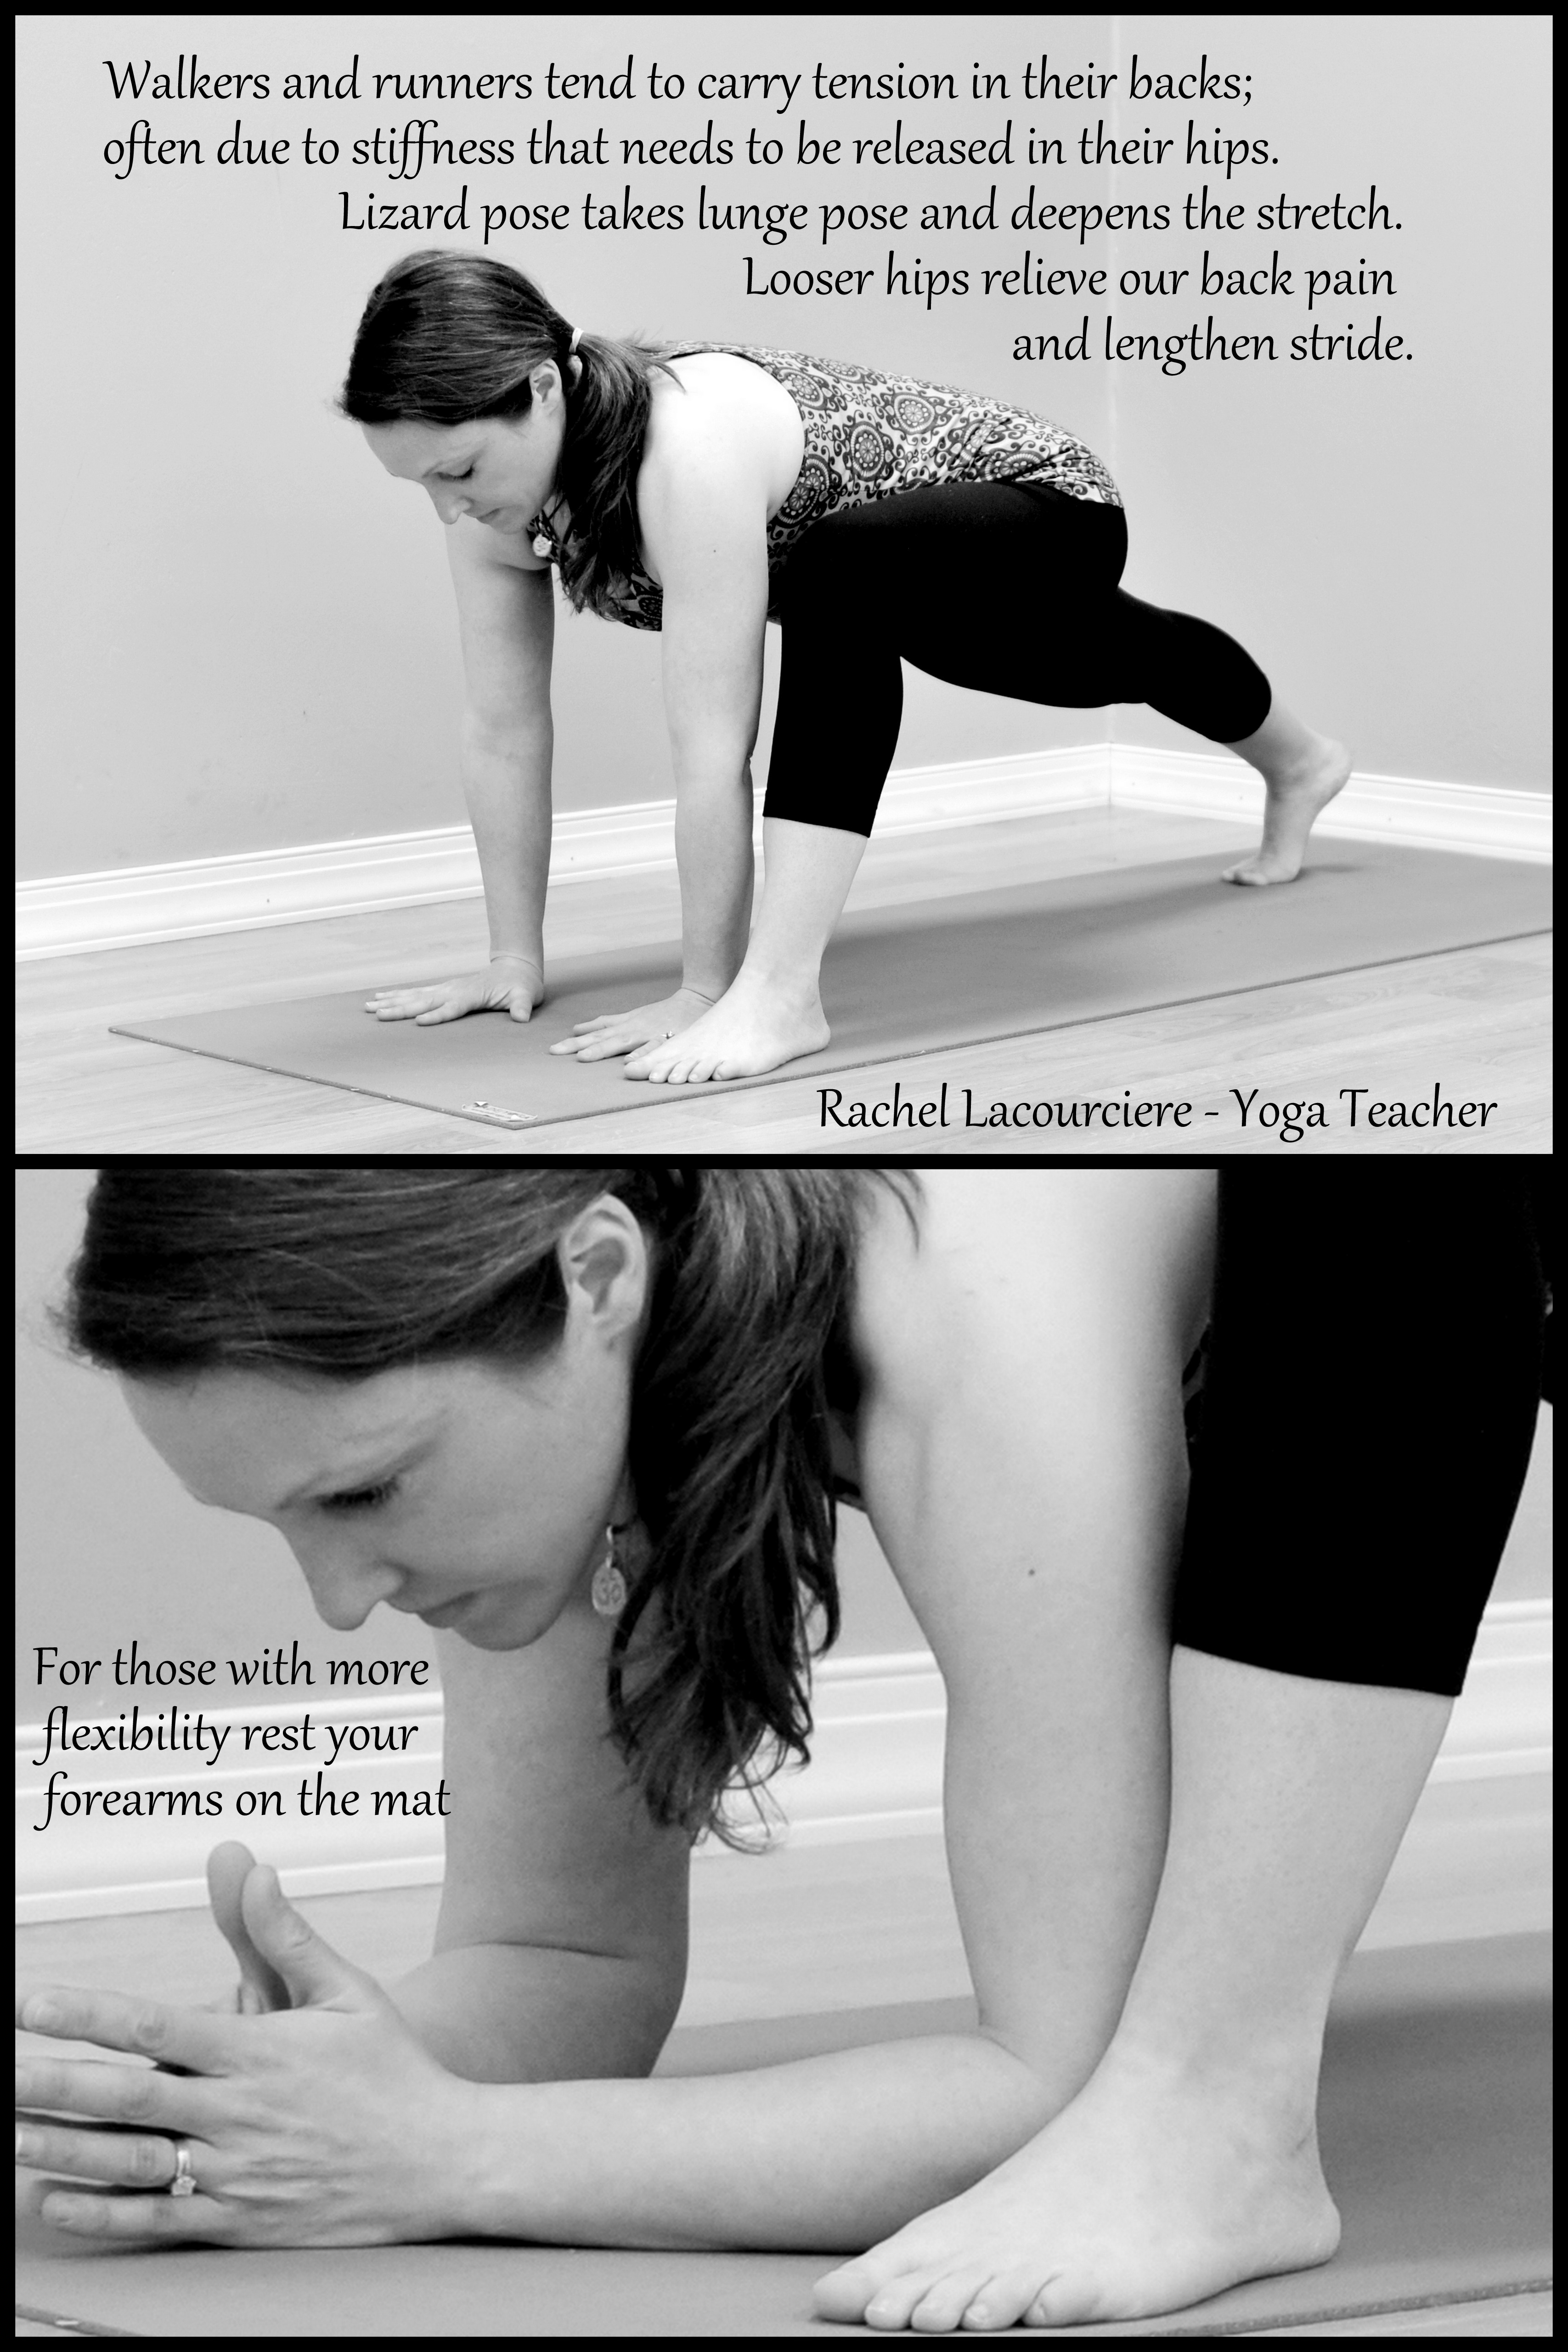 Lizard pose to stretch tight hips